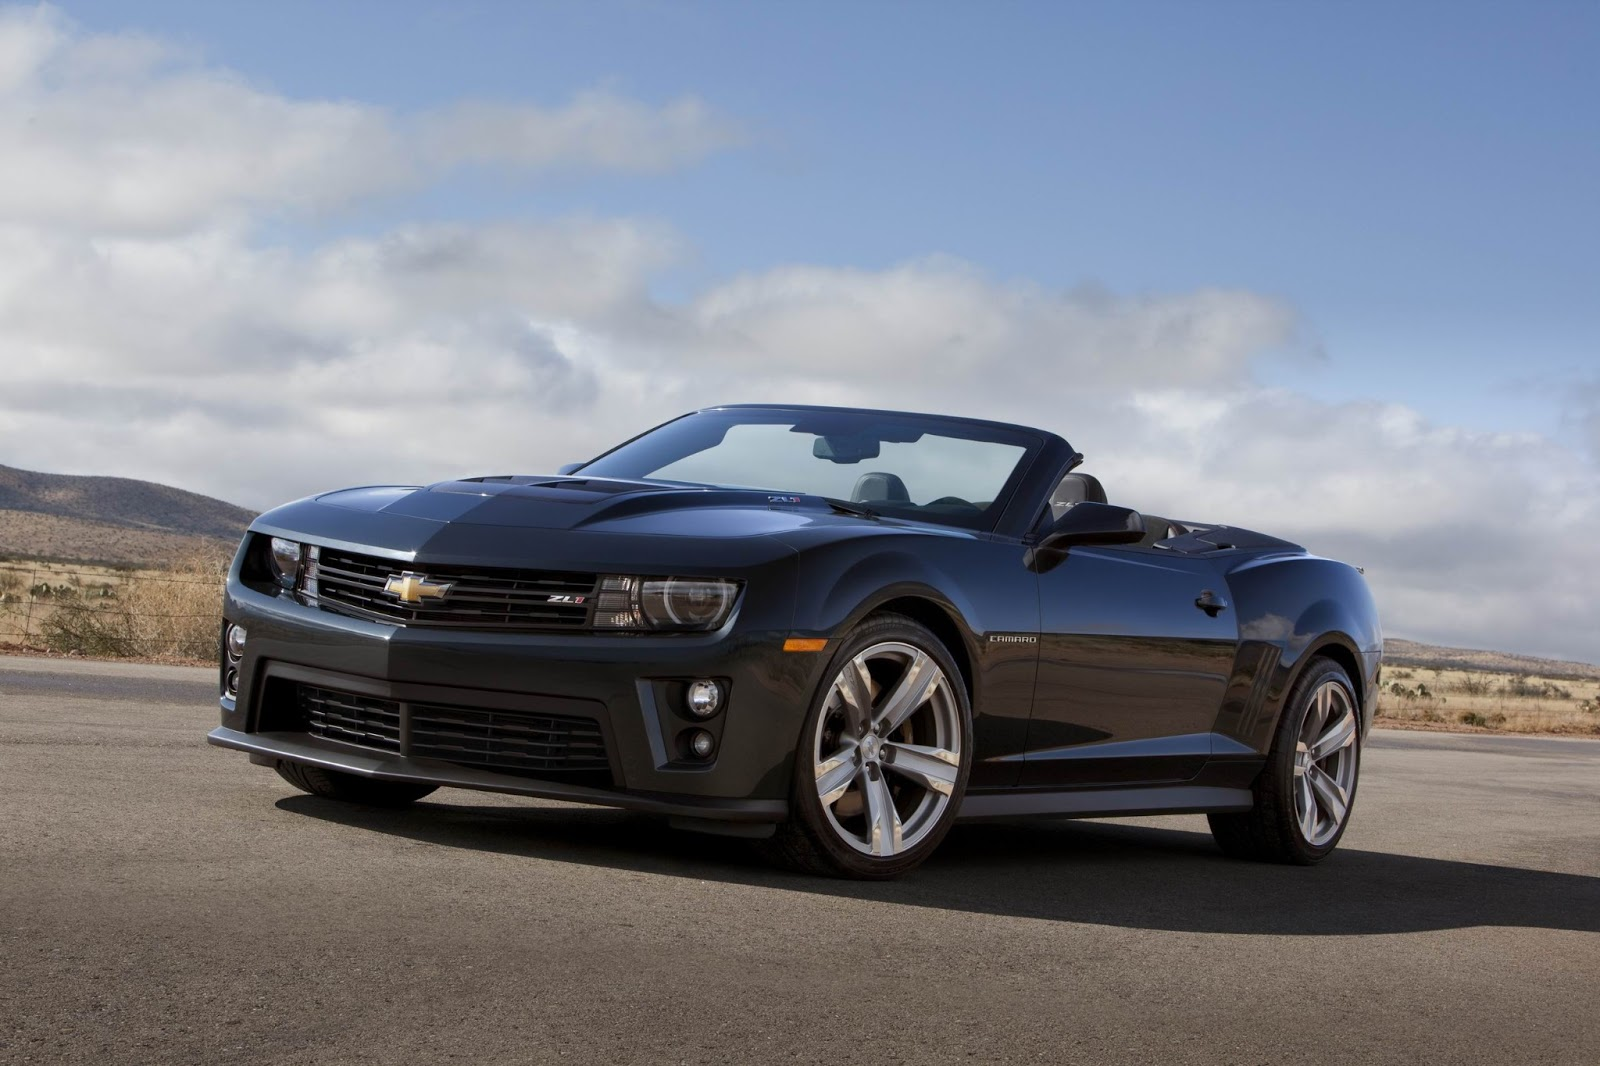 Cars HD Wallpapers Chevrolet Camaro ZL1 2013 best HD picture 1600x1066